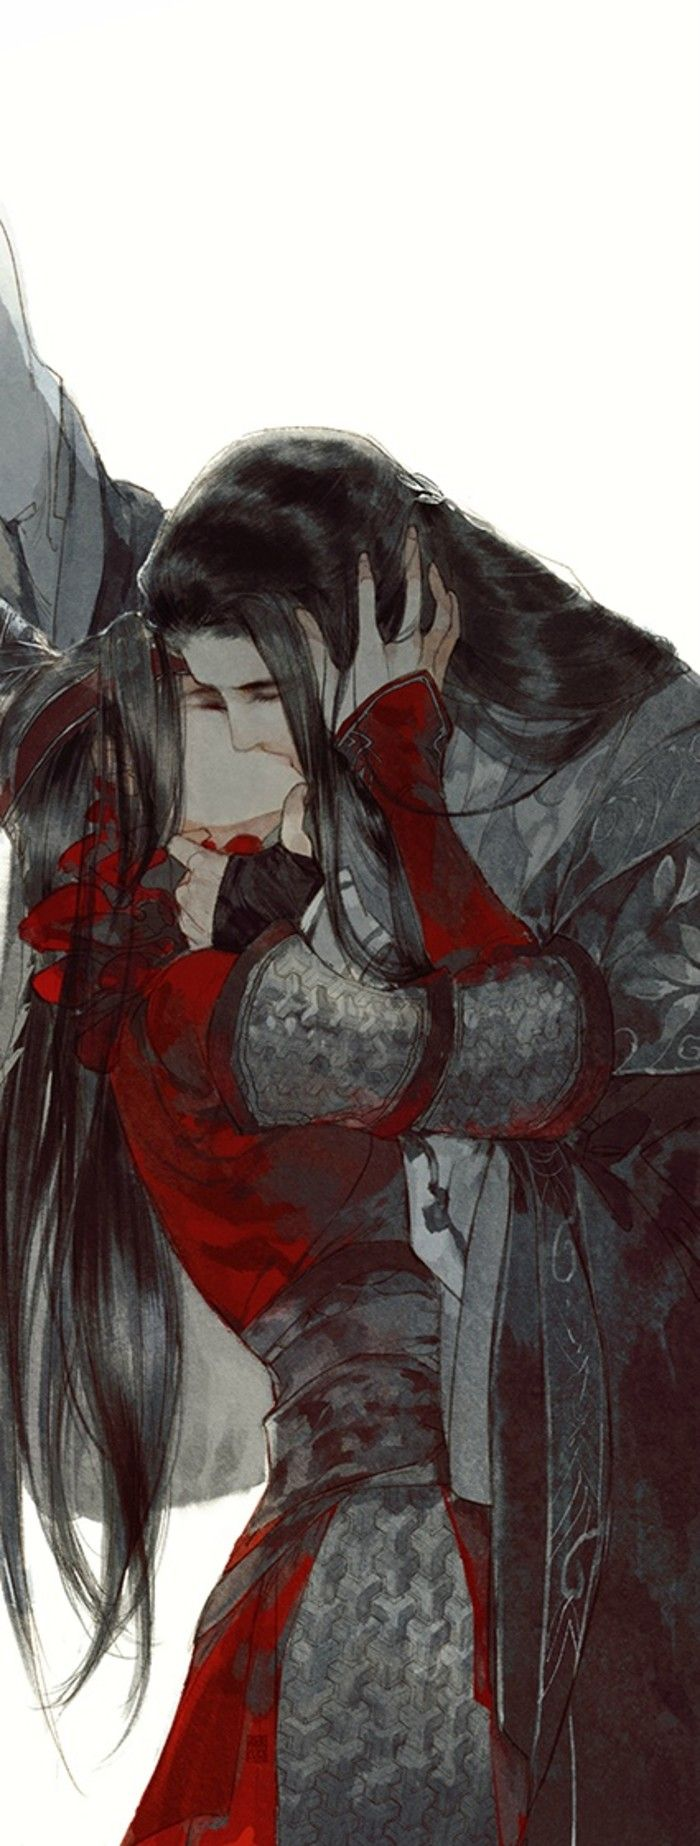 ~tender mature kiss illustration by 伊吹五月 (Y Xuy Ngũ Nguyệt) -(Ibuki Satsuki)